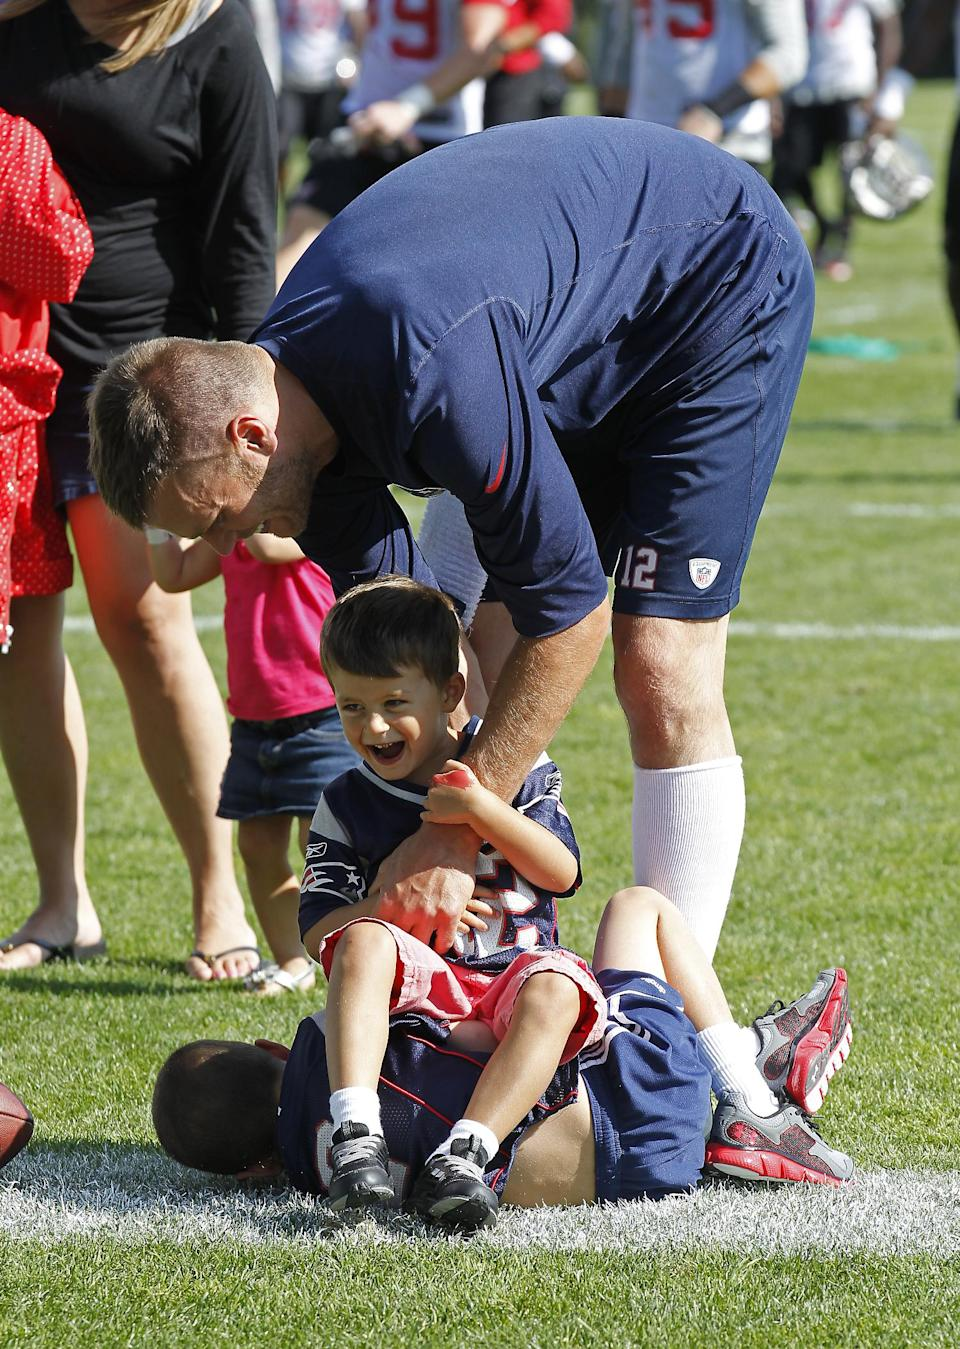 New England Patriots quarterback Tom Brady plays with his sons, John, on ground, and Benjamin, following the Patriots' joint workout with the Tampa Bay Buccaneers at NFL football training camp, in Foxborough, Mass., Thursday, Aug. 15, 2013. (AP Photo/Stew Milne)